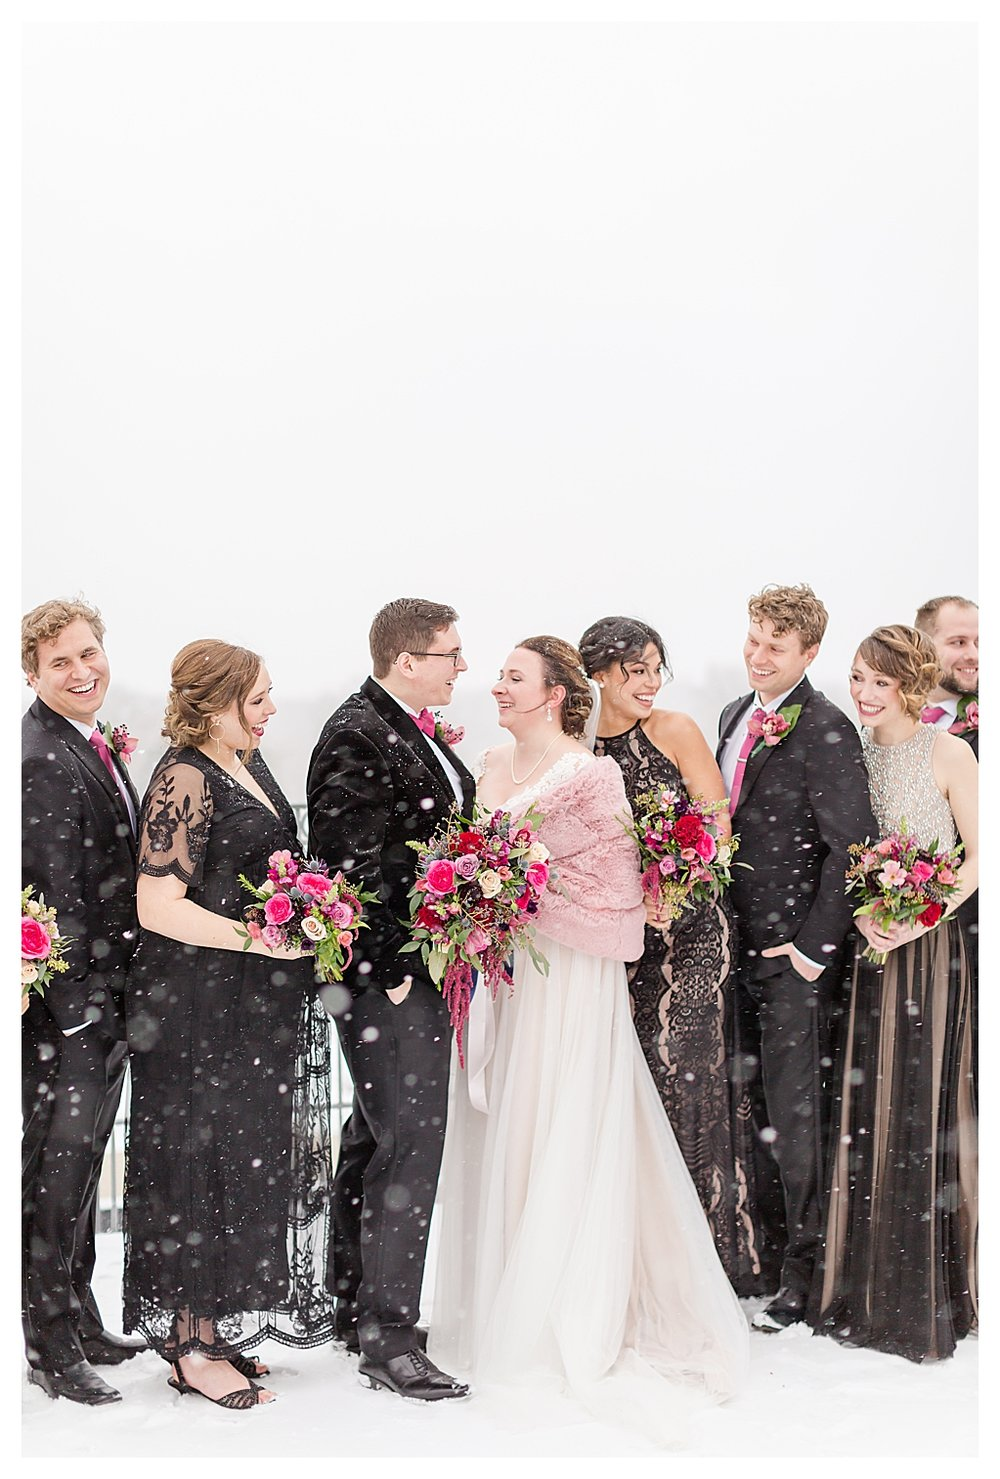 Winter Wedding at The Mill Top Indy Noblesville_1231.jpg